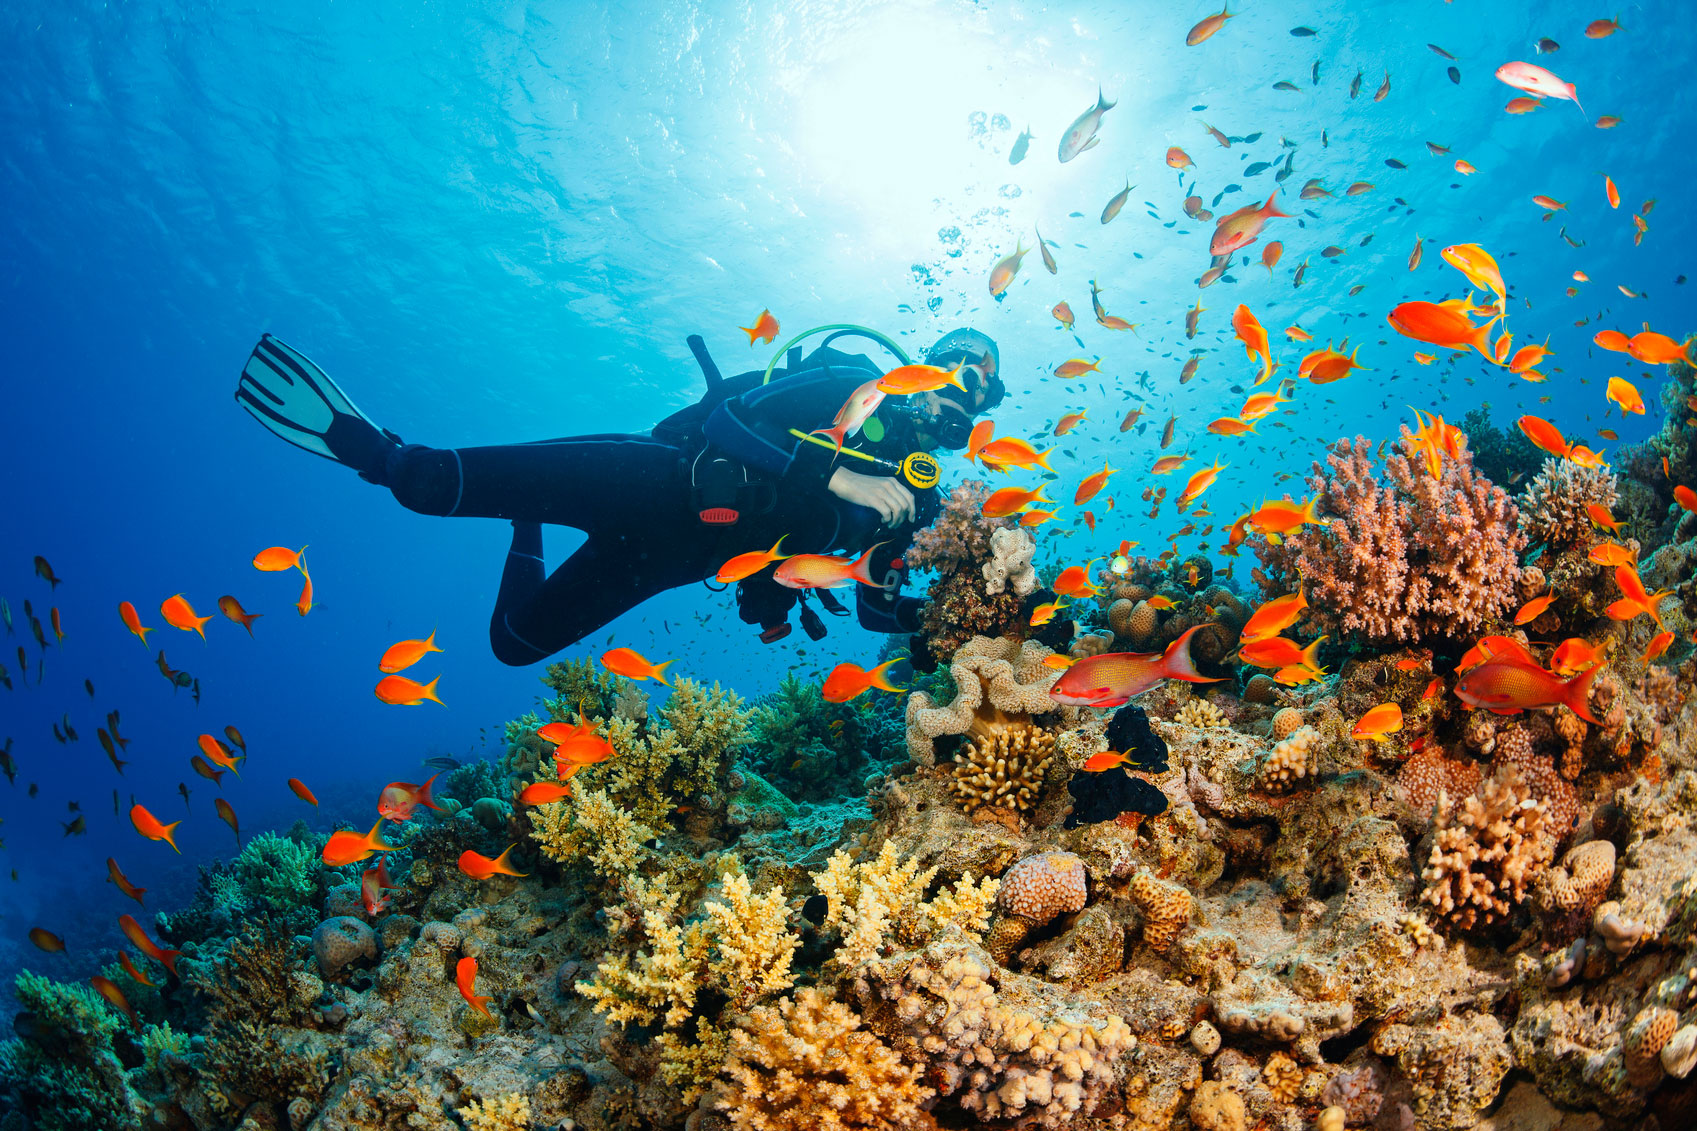 Underwater-Scuba-diver-explore-and-enjoy-Coral-reef-Sea-life